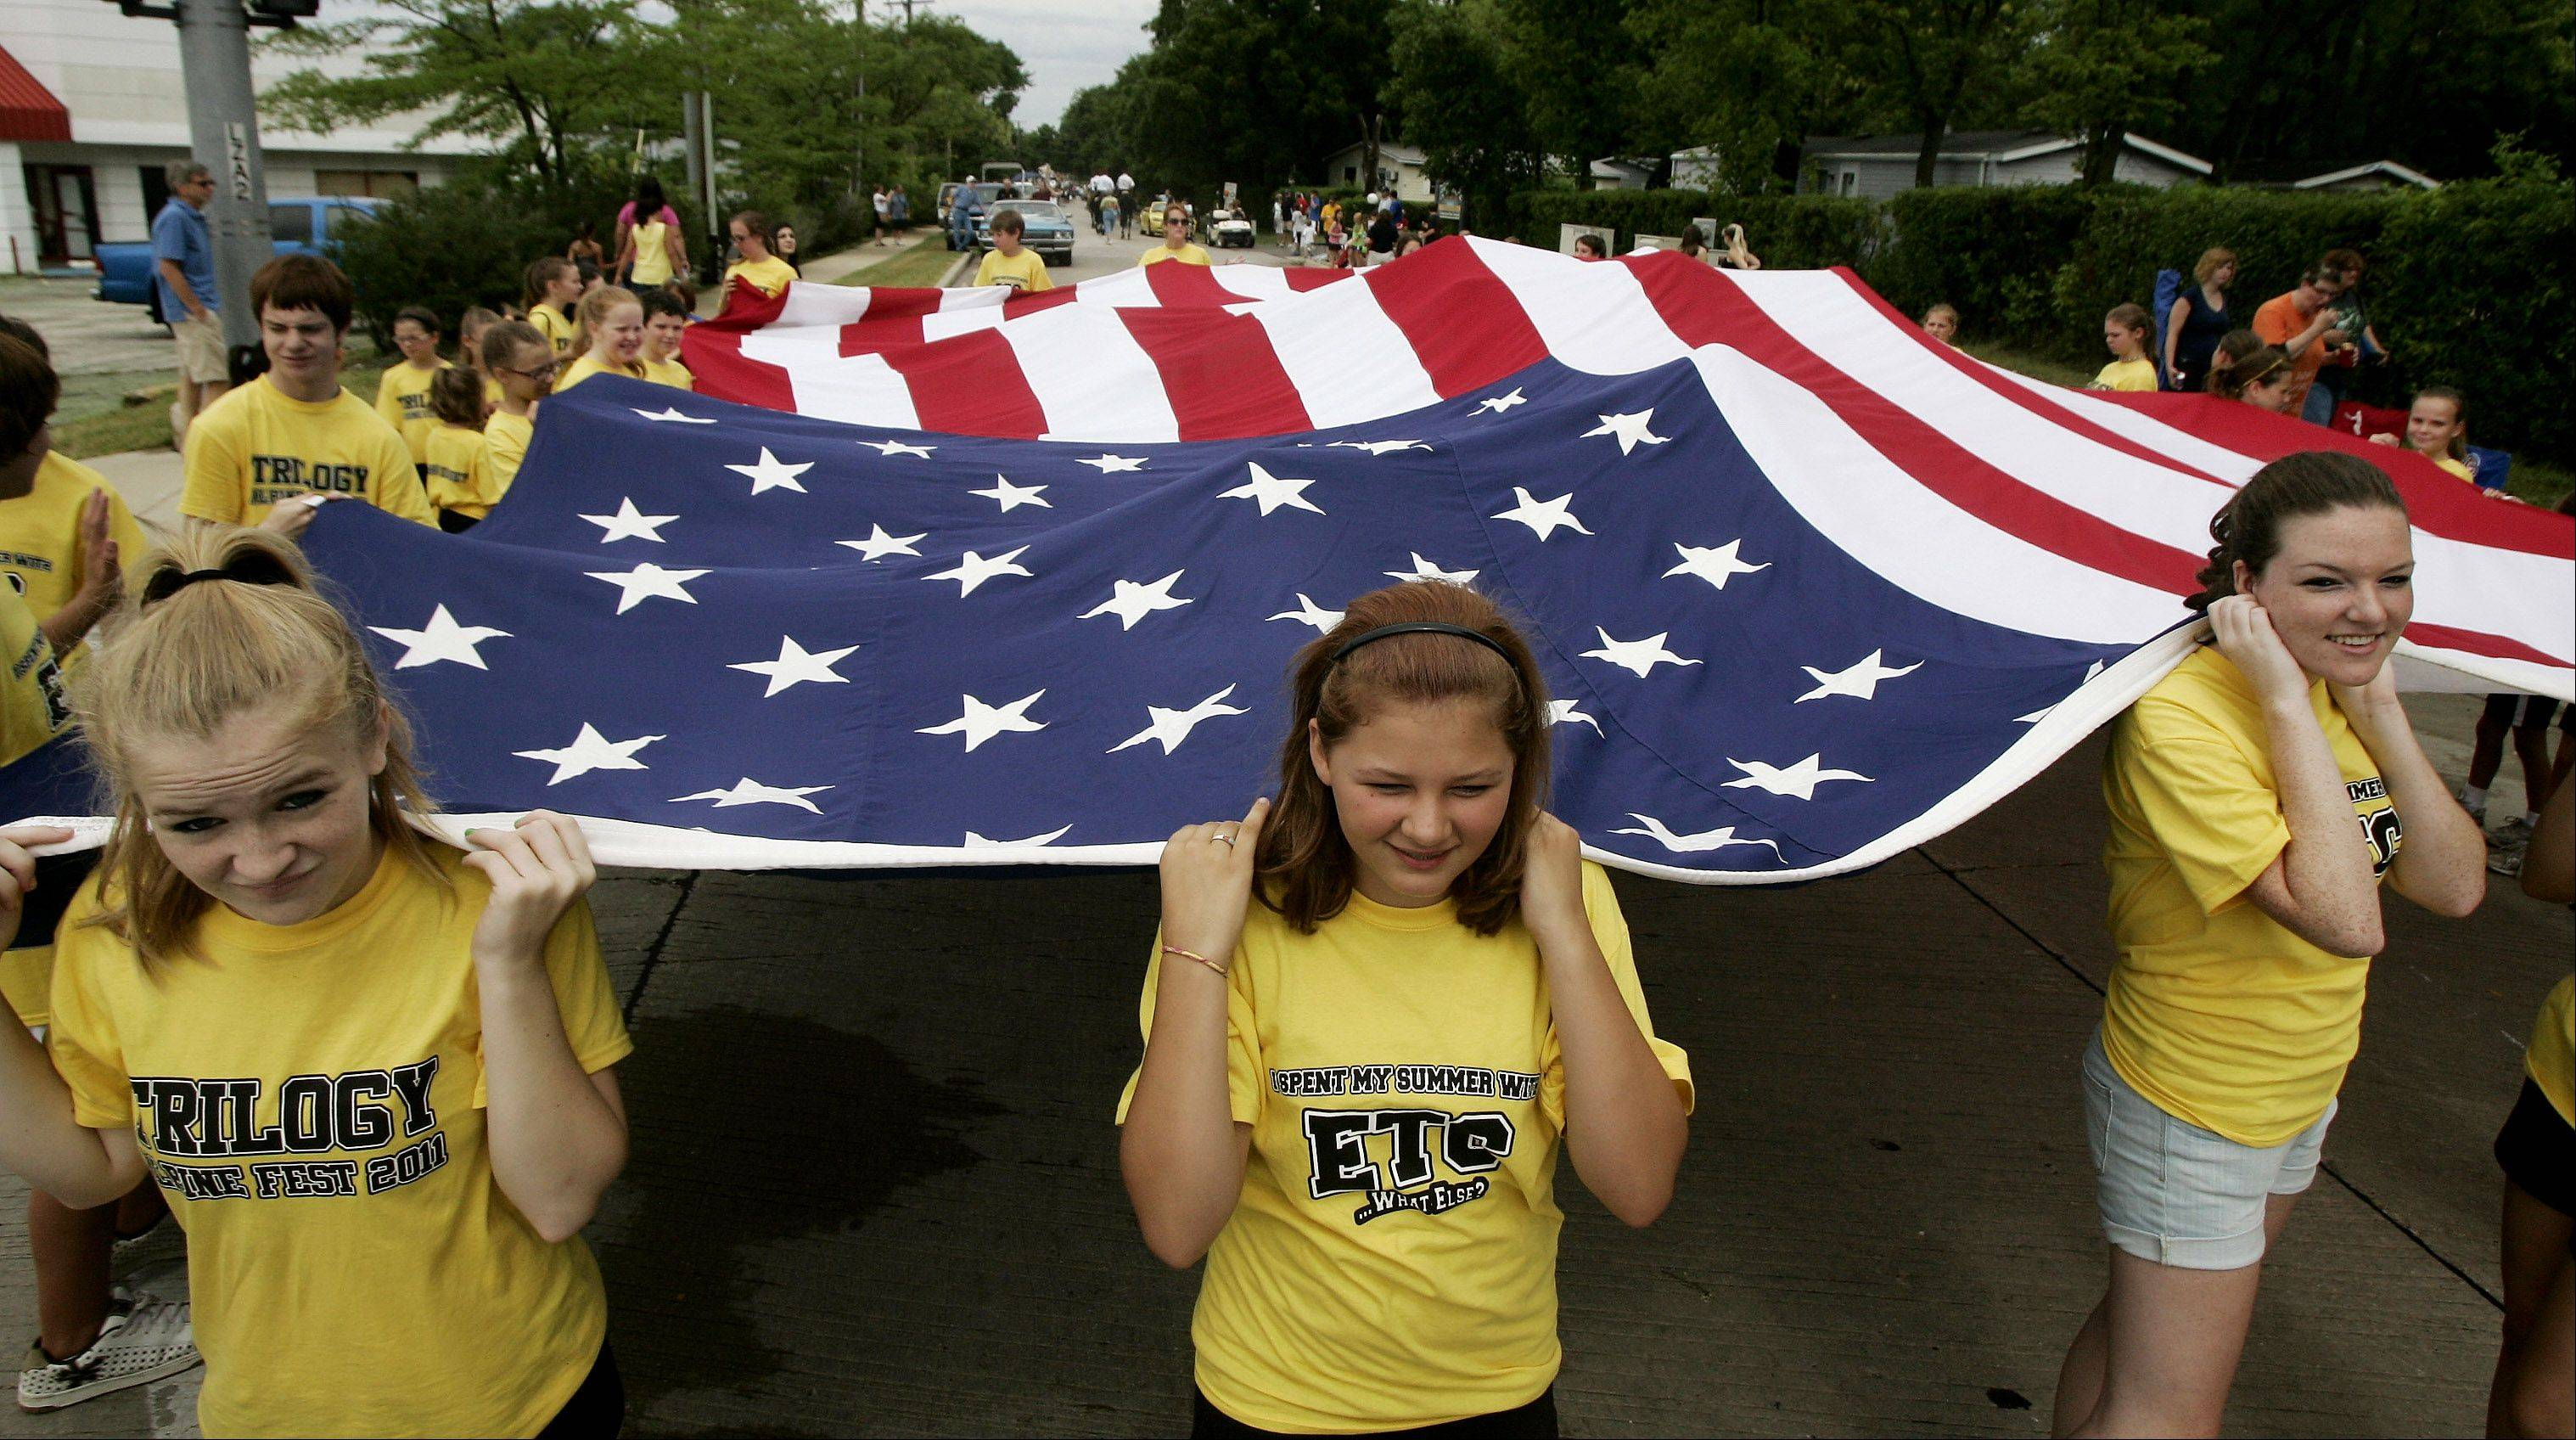 Members of Trilogy Dance carry a large American flag during the Lake Zurich Alpine Festival parade.